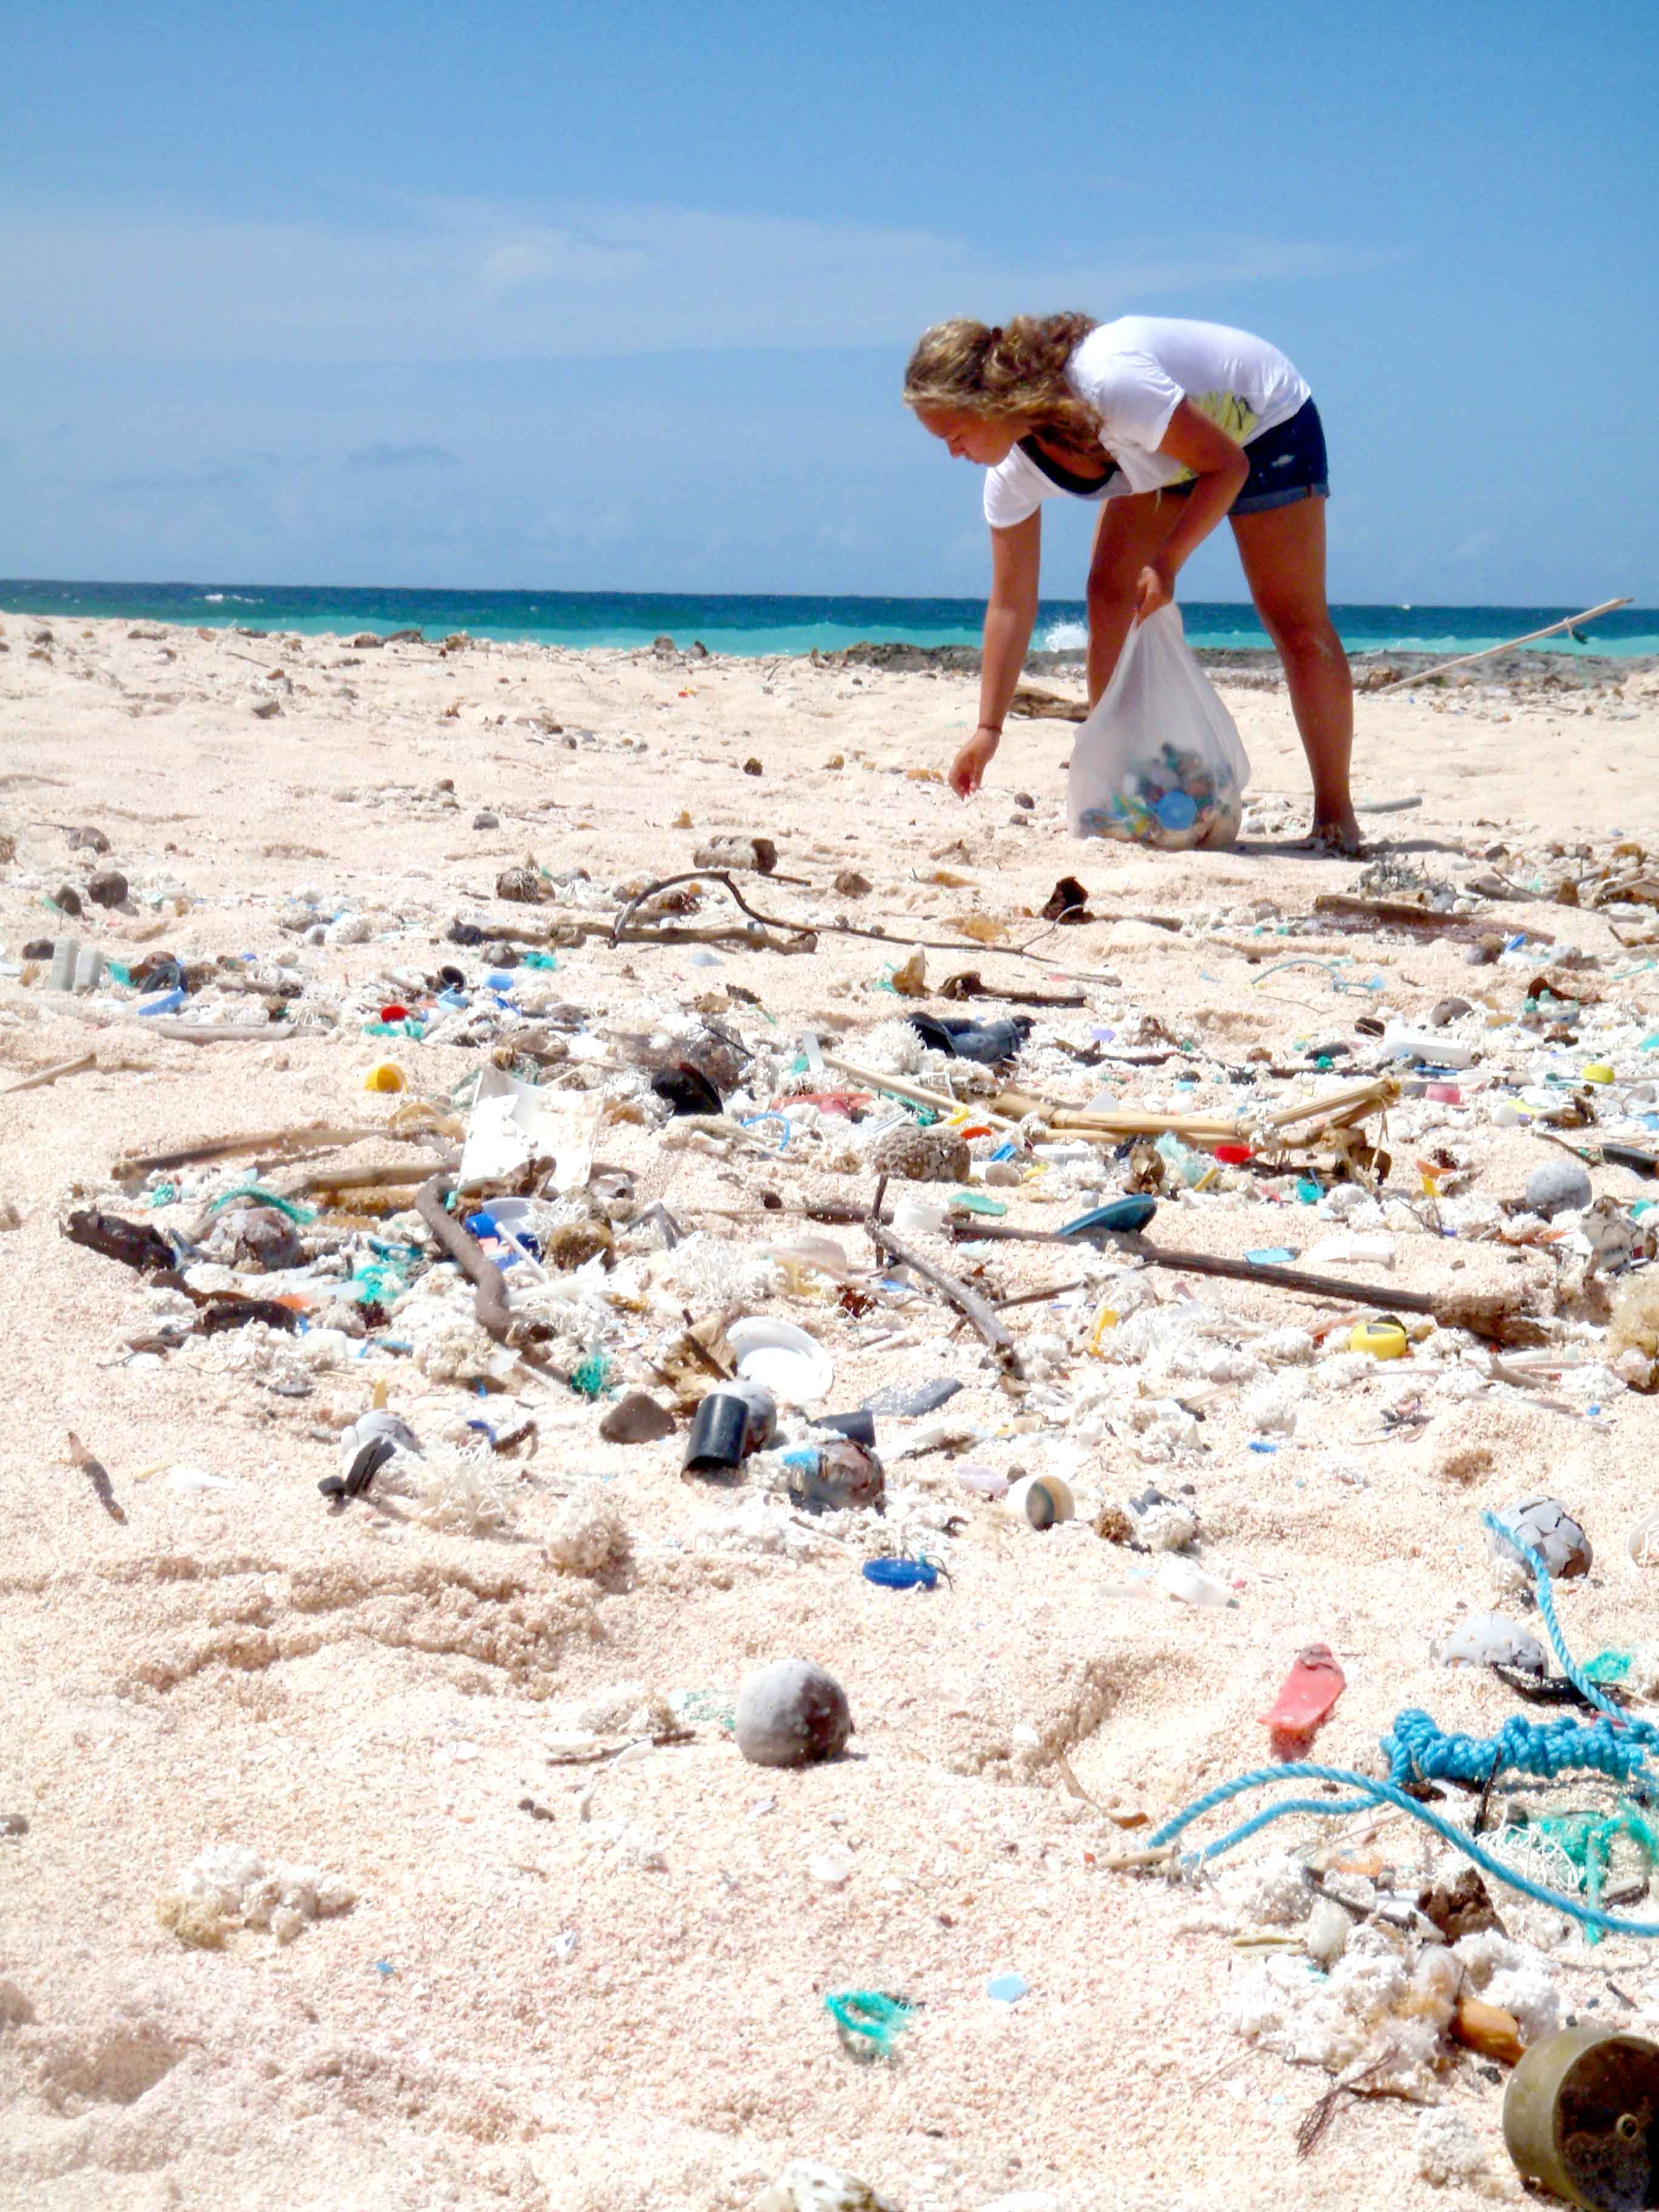 Bali The Two Sites Of An Island And Its Pollution The Perfect